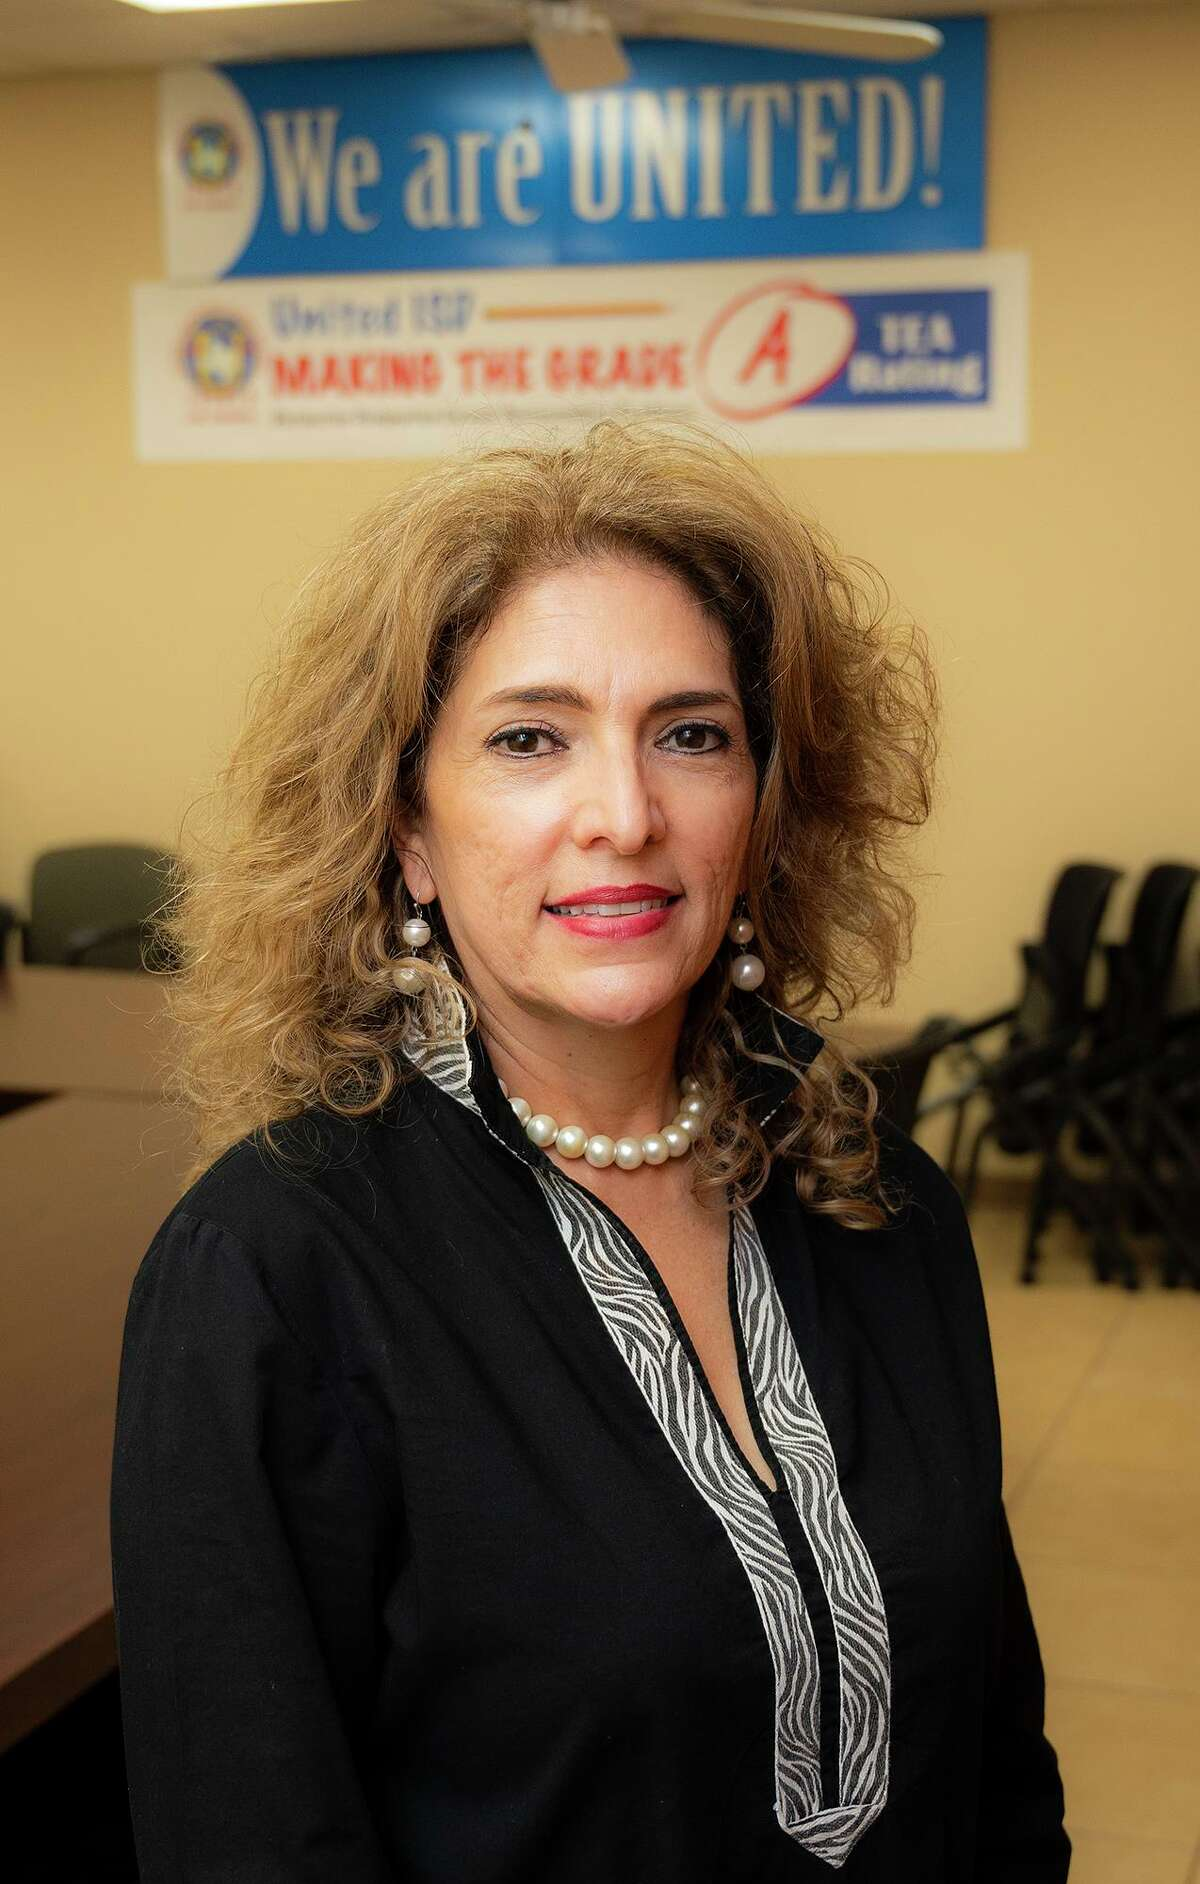 UISD Director of Guidance & Counseling Melissa Ramirez poses for a photo, Thursday, Aug. 19, 2021, at the UISD Curriculum and Instruction offices.